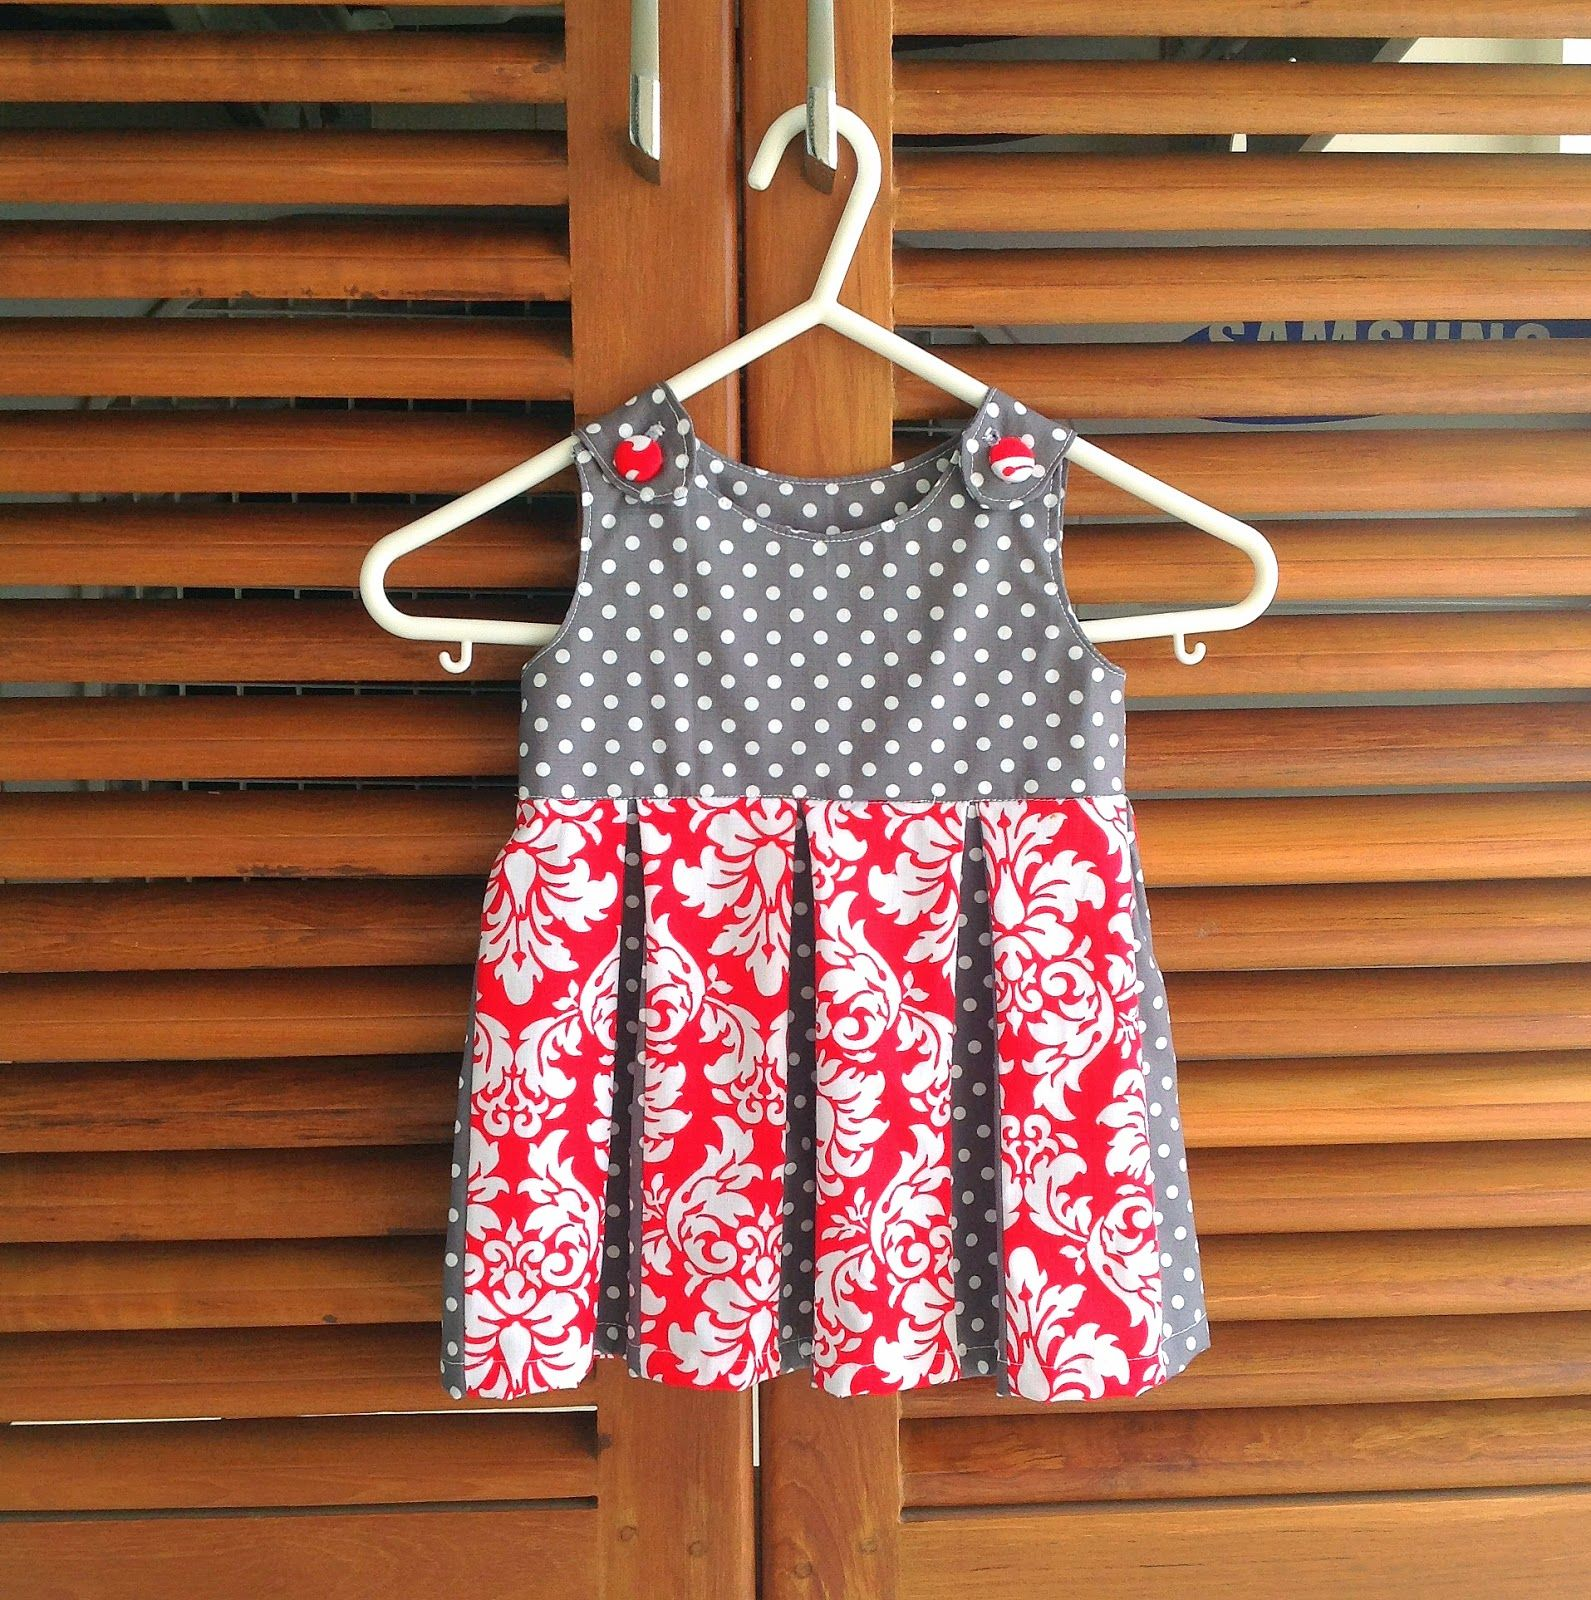 Box Pleated Dress, Baby/ Toddler Dress Sewing Pattern, Newborn to Two Years